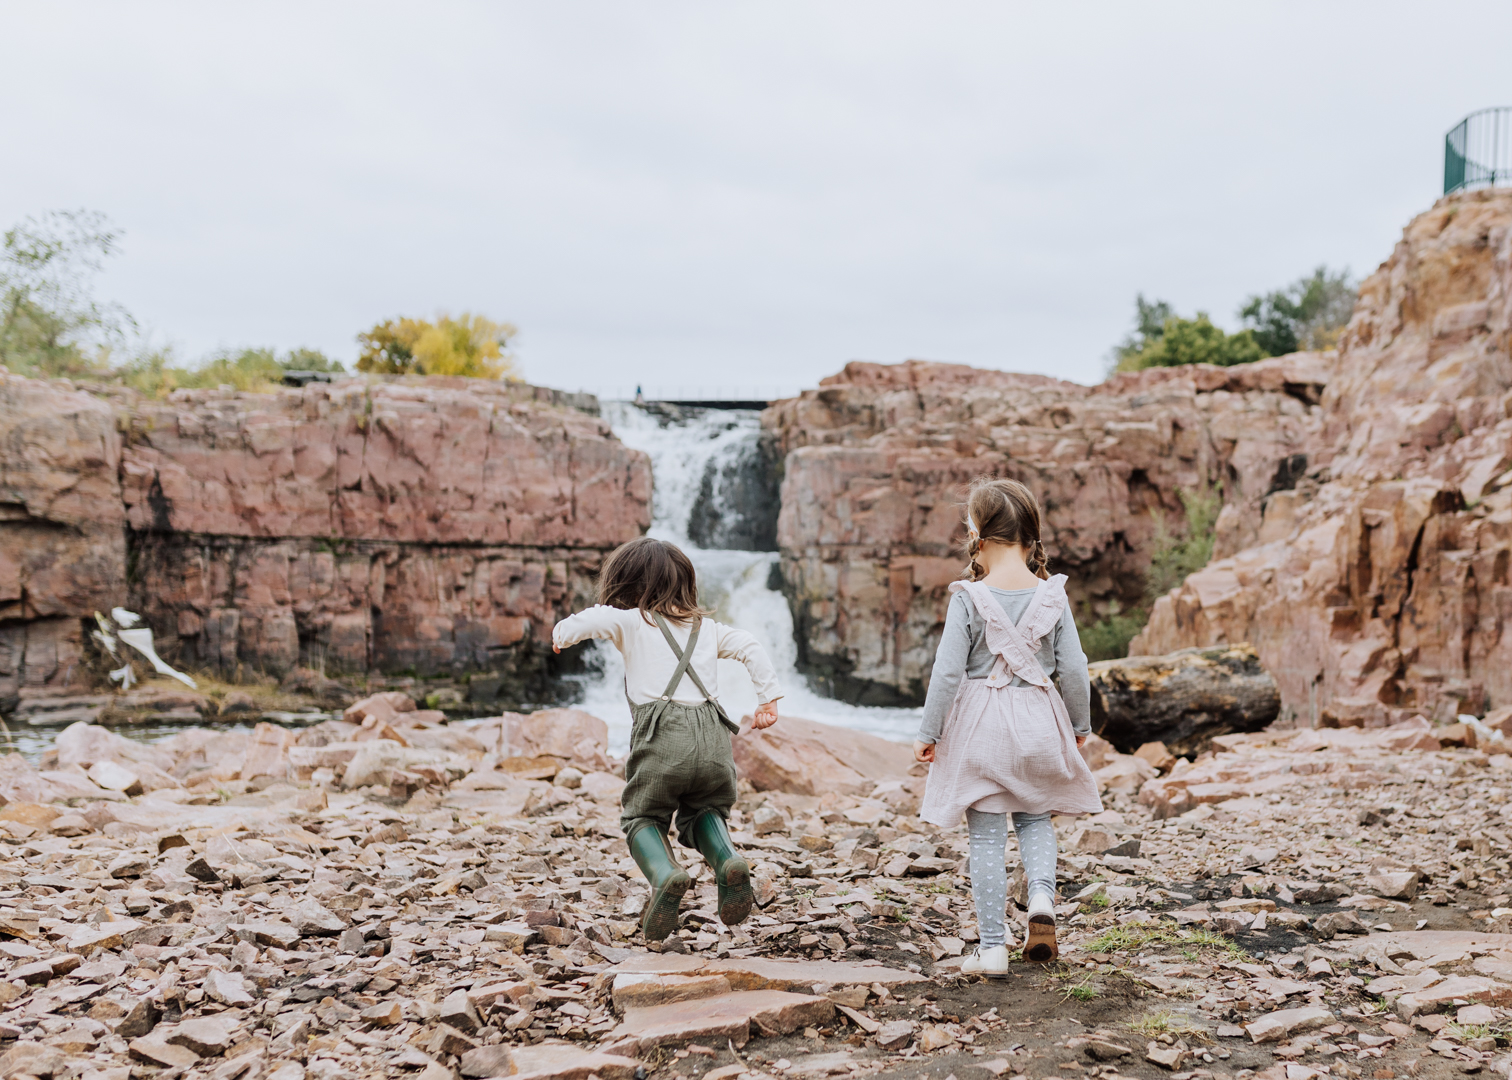 the beautiful falls park in sioux falls, south dakota | thelovedesignedlife.com #runwildmychild #discoversouthdakota #seasonsofsodak #familytravel